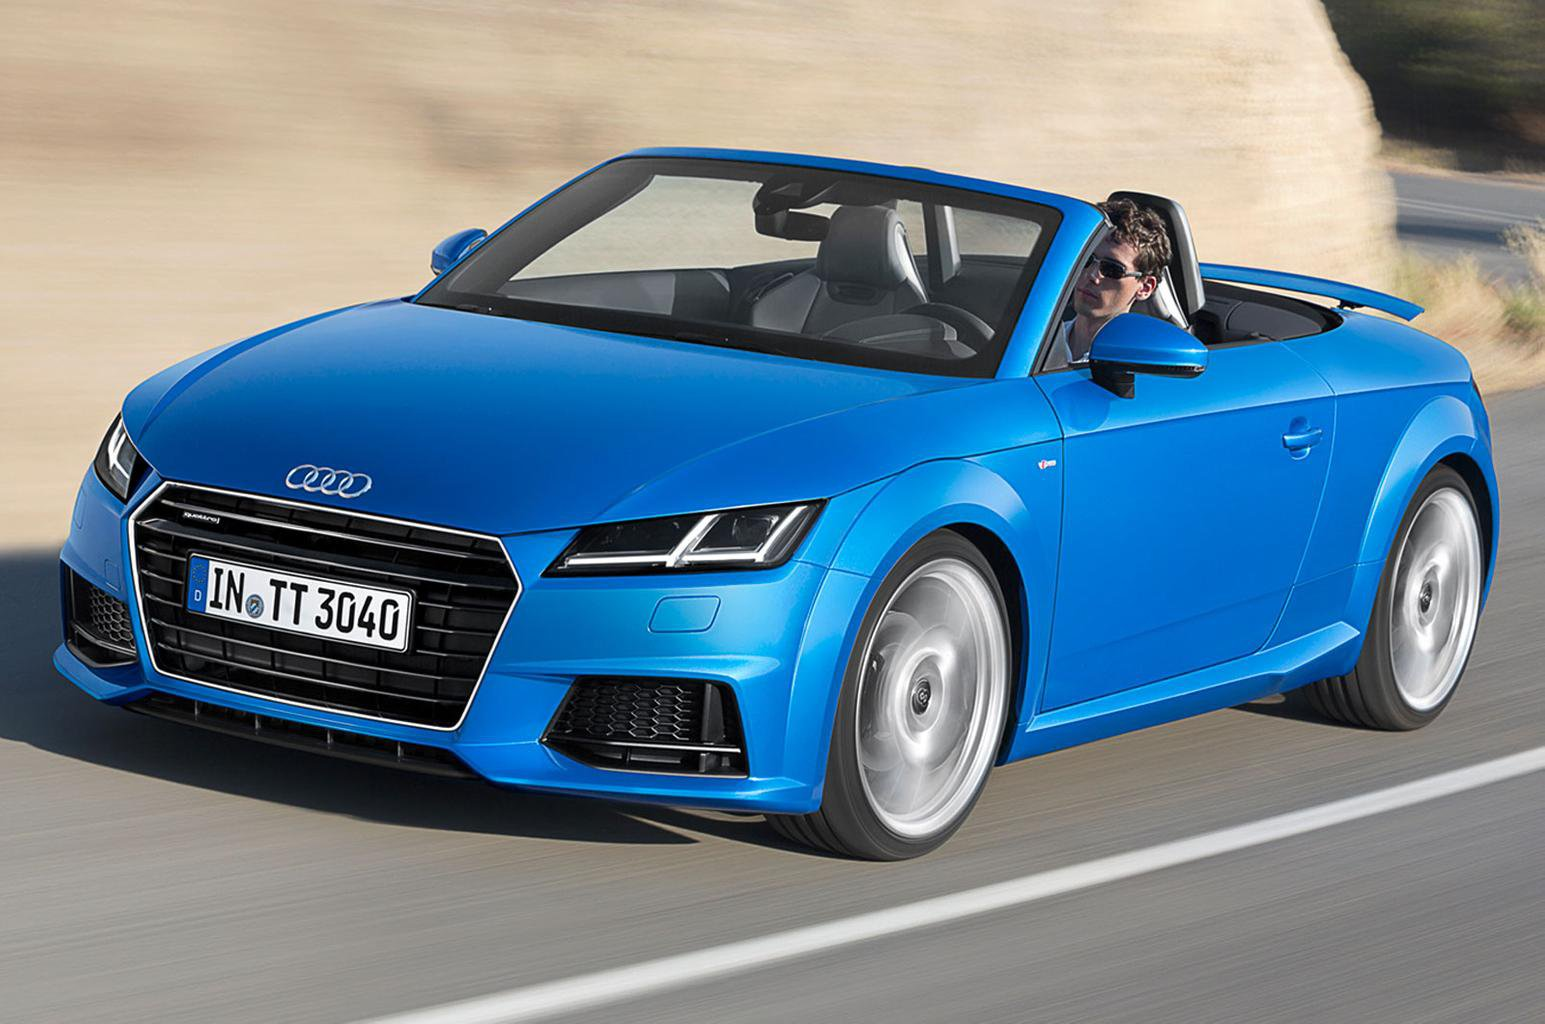 2015 Audi TT Roadster pricing, spec and on-sale date